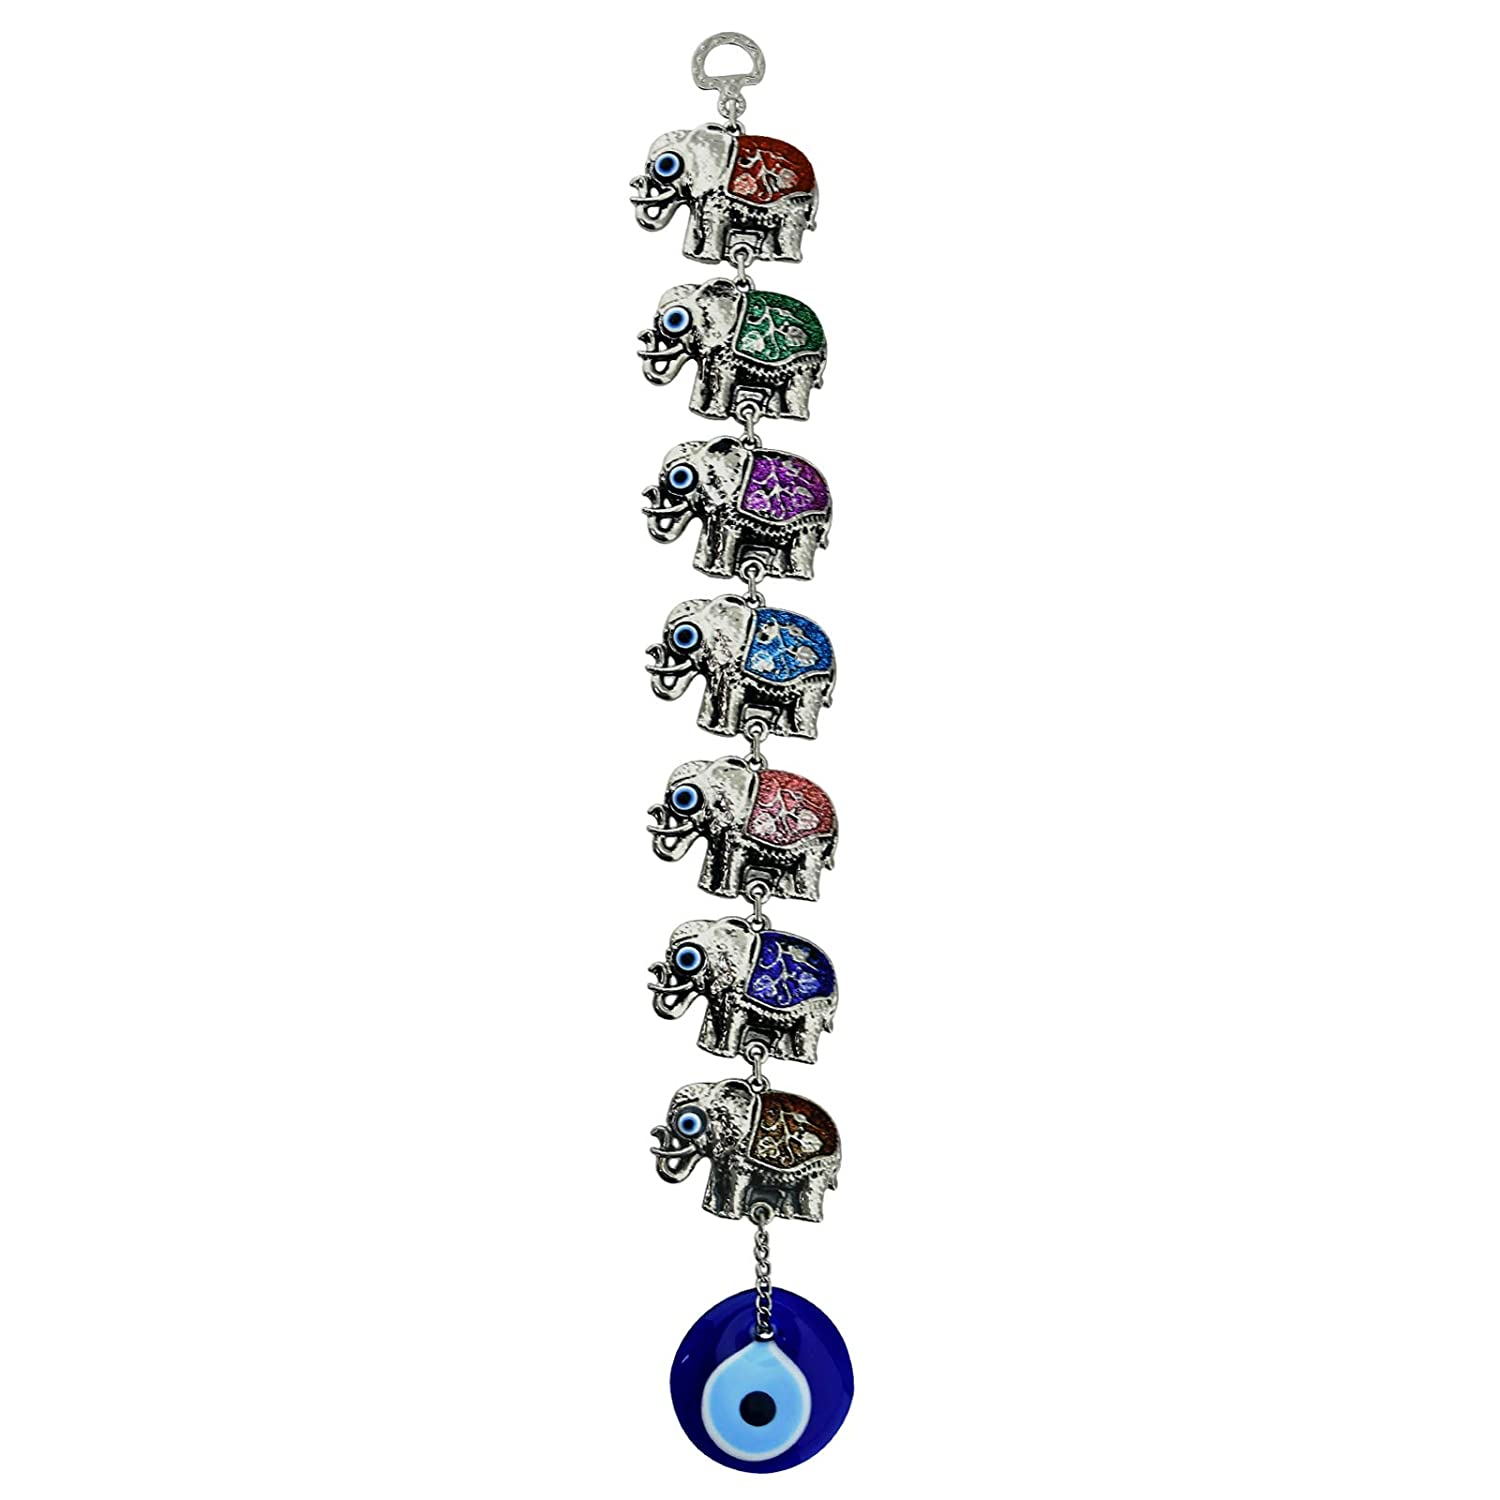 Bead Global Rainbow Seven Elephants Glass Turkish Evil Eye Home Protection Charm- Seven Elephants Hanging Ornaments Wall Decor (Colourful)